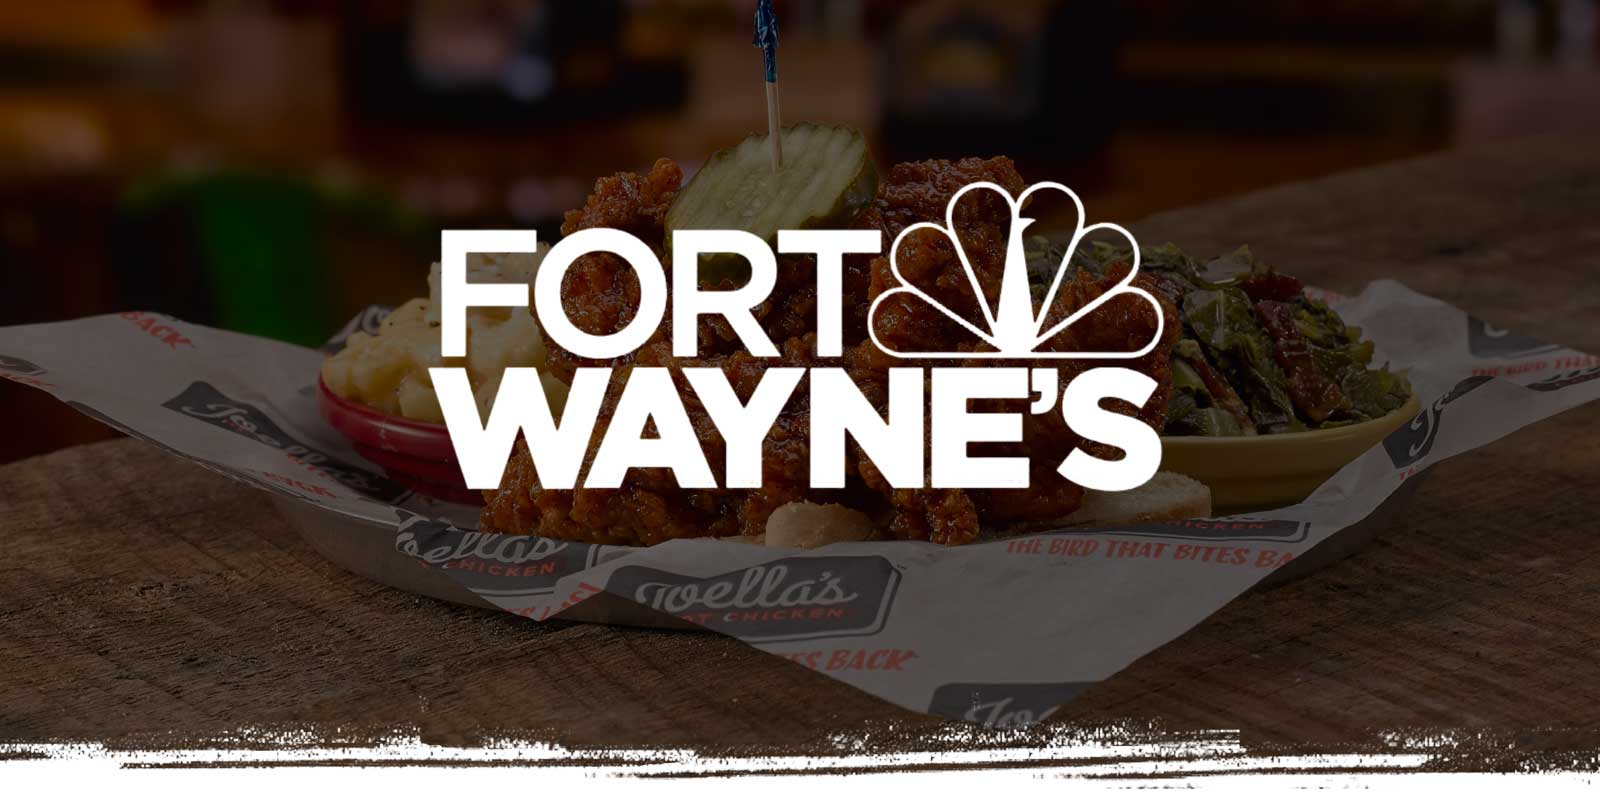 Fort Wayne's NBC logo on Chicken Tenders background